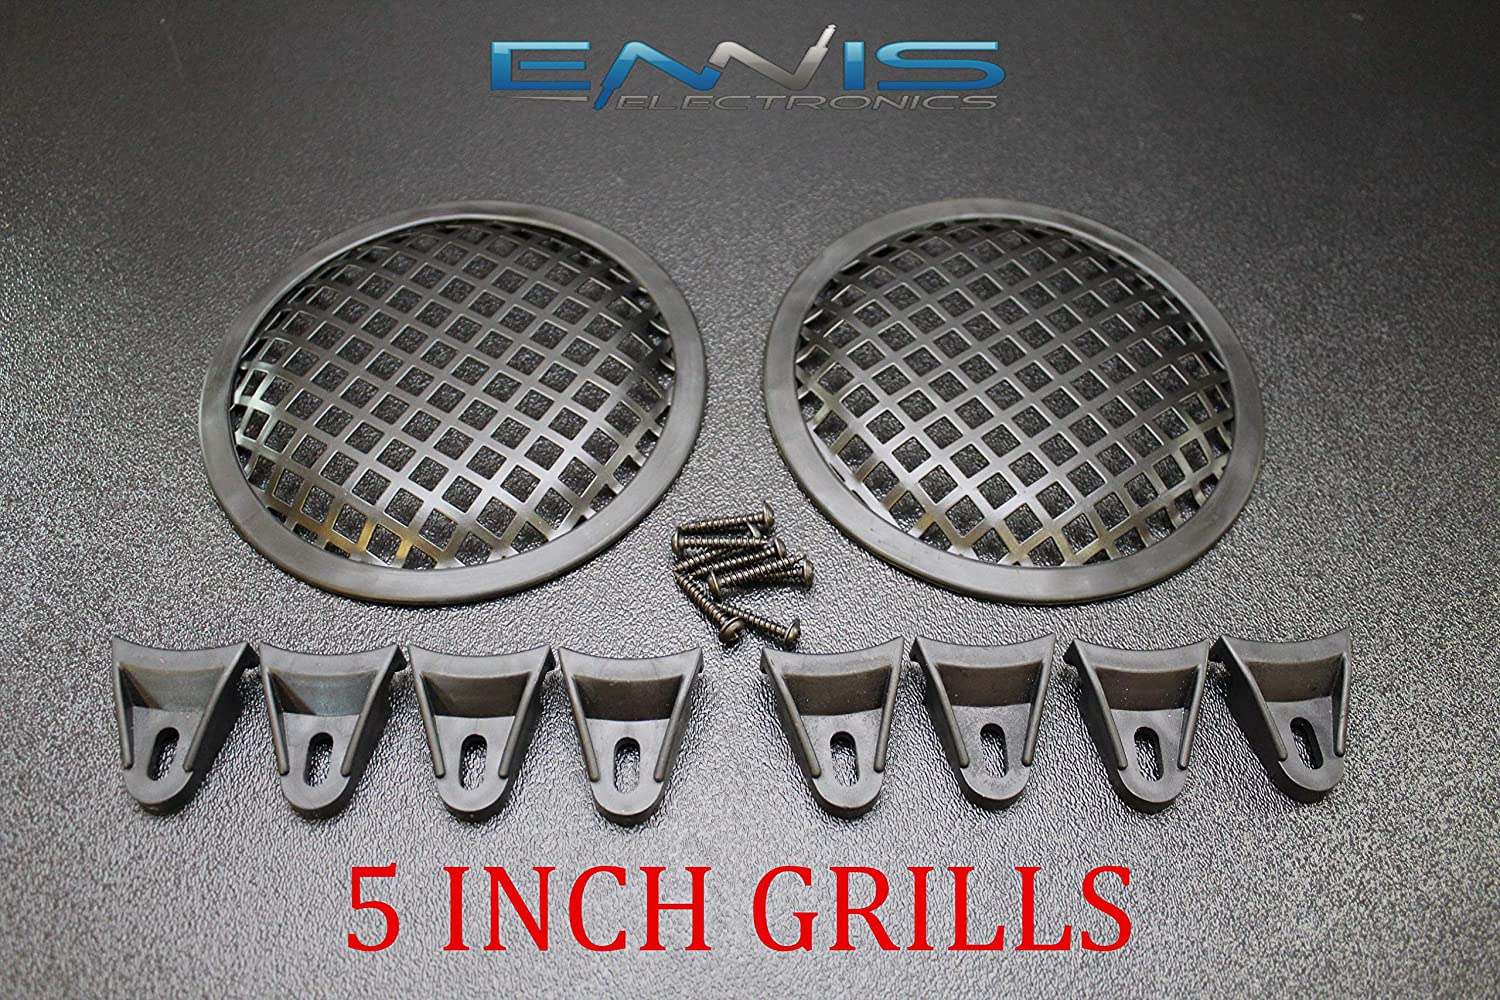 (2) 5 INCH Steel Speaker SUB SUBWOOFER Grill MESH Cover W/Clips Screws GR-5 91YOifBhqAL